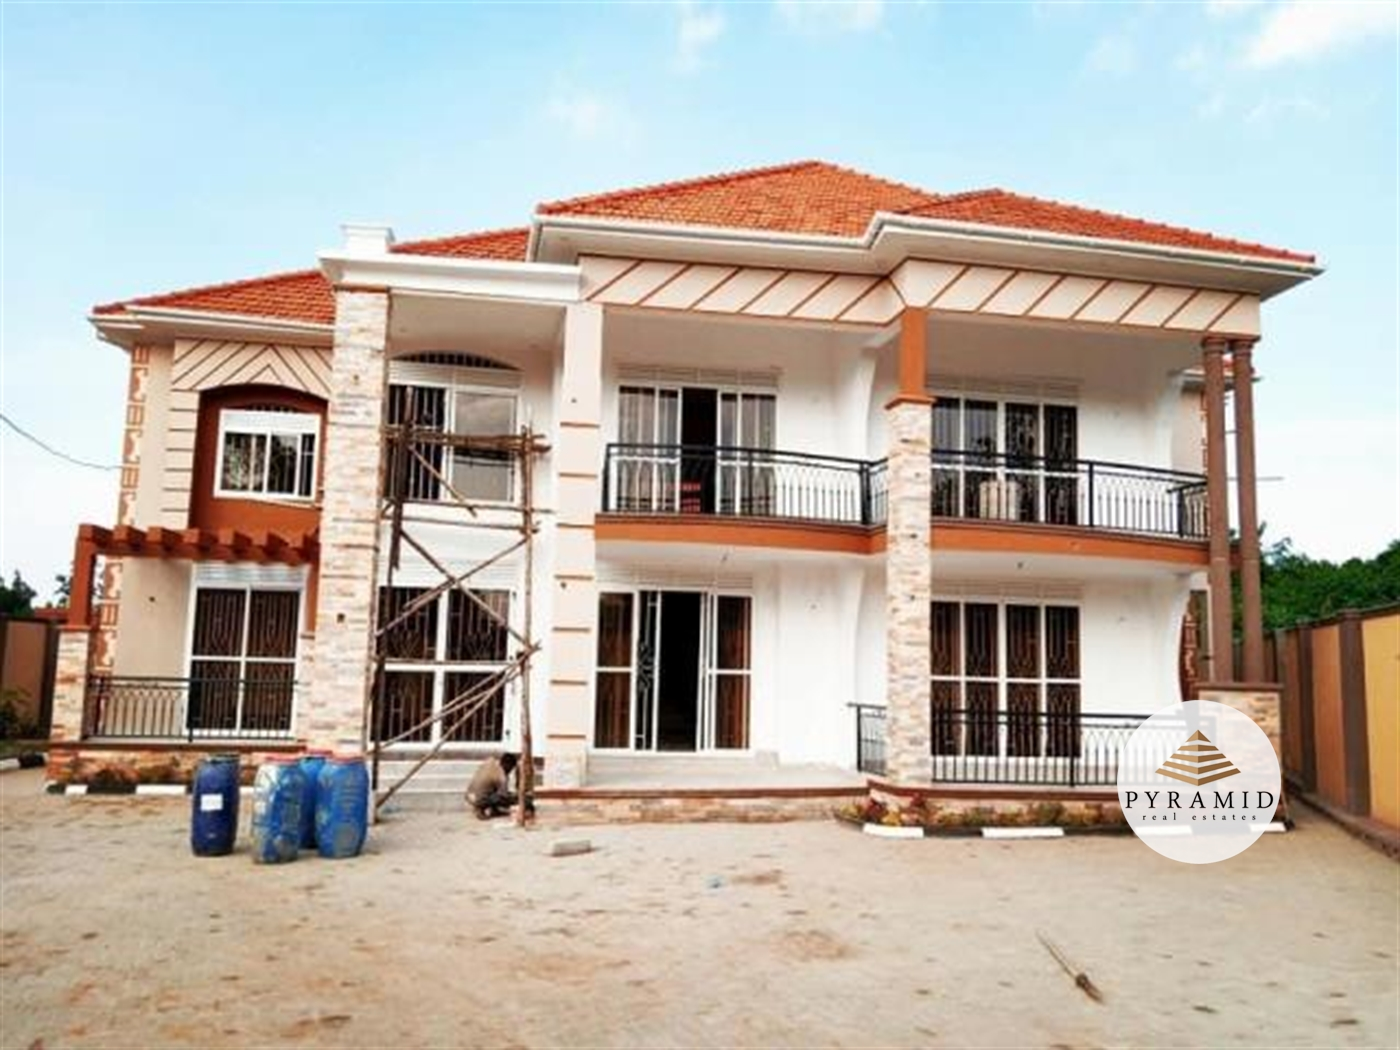 Storyed house for sale in Kiwatule Kampala